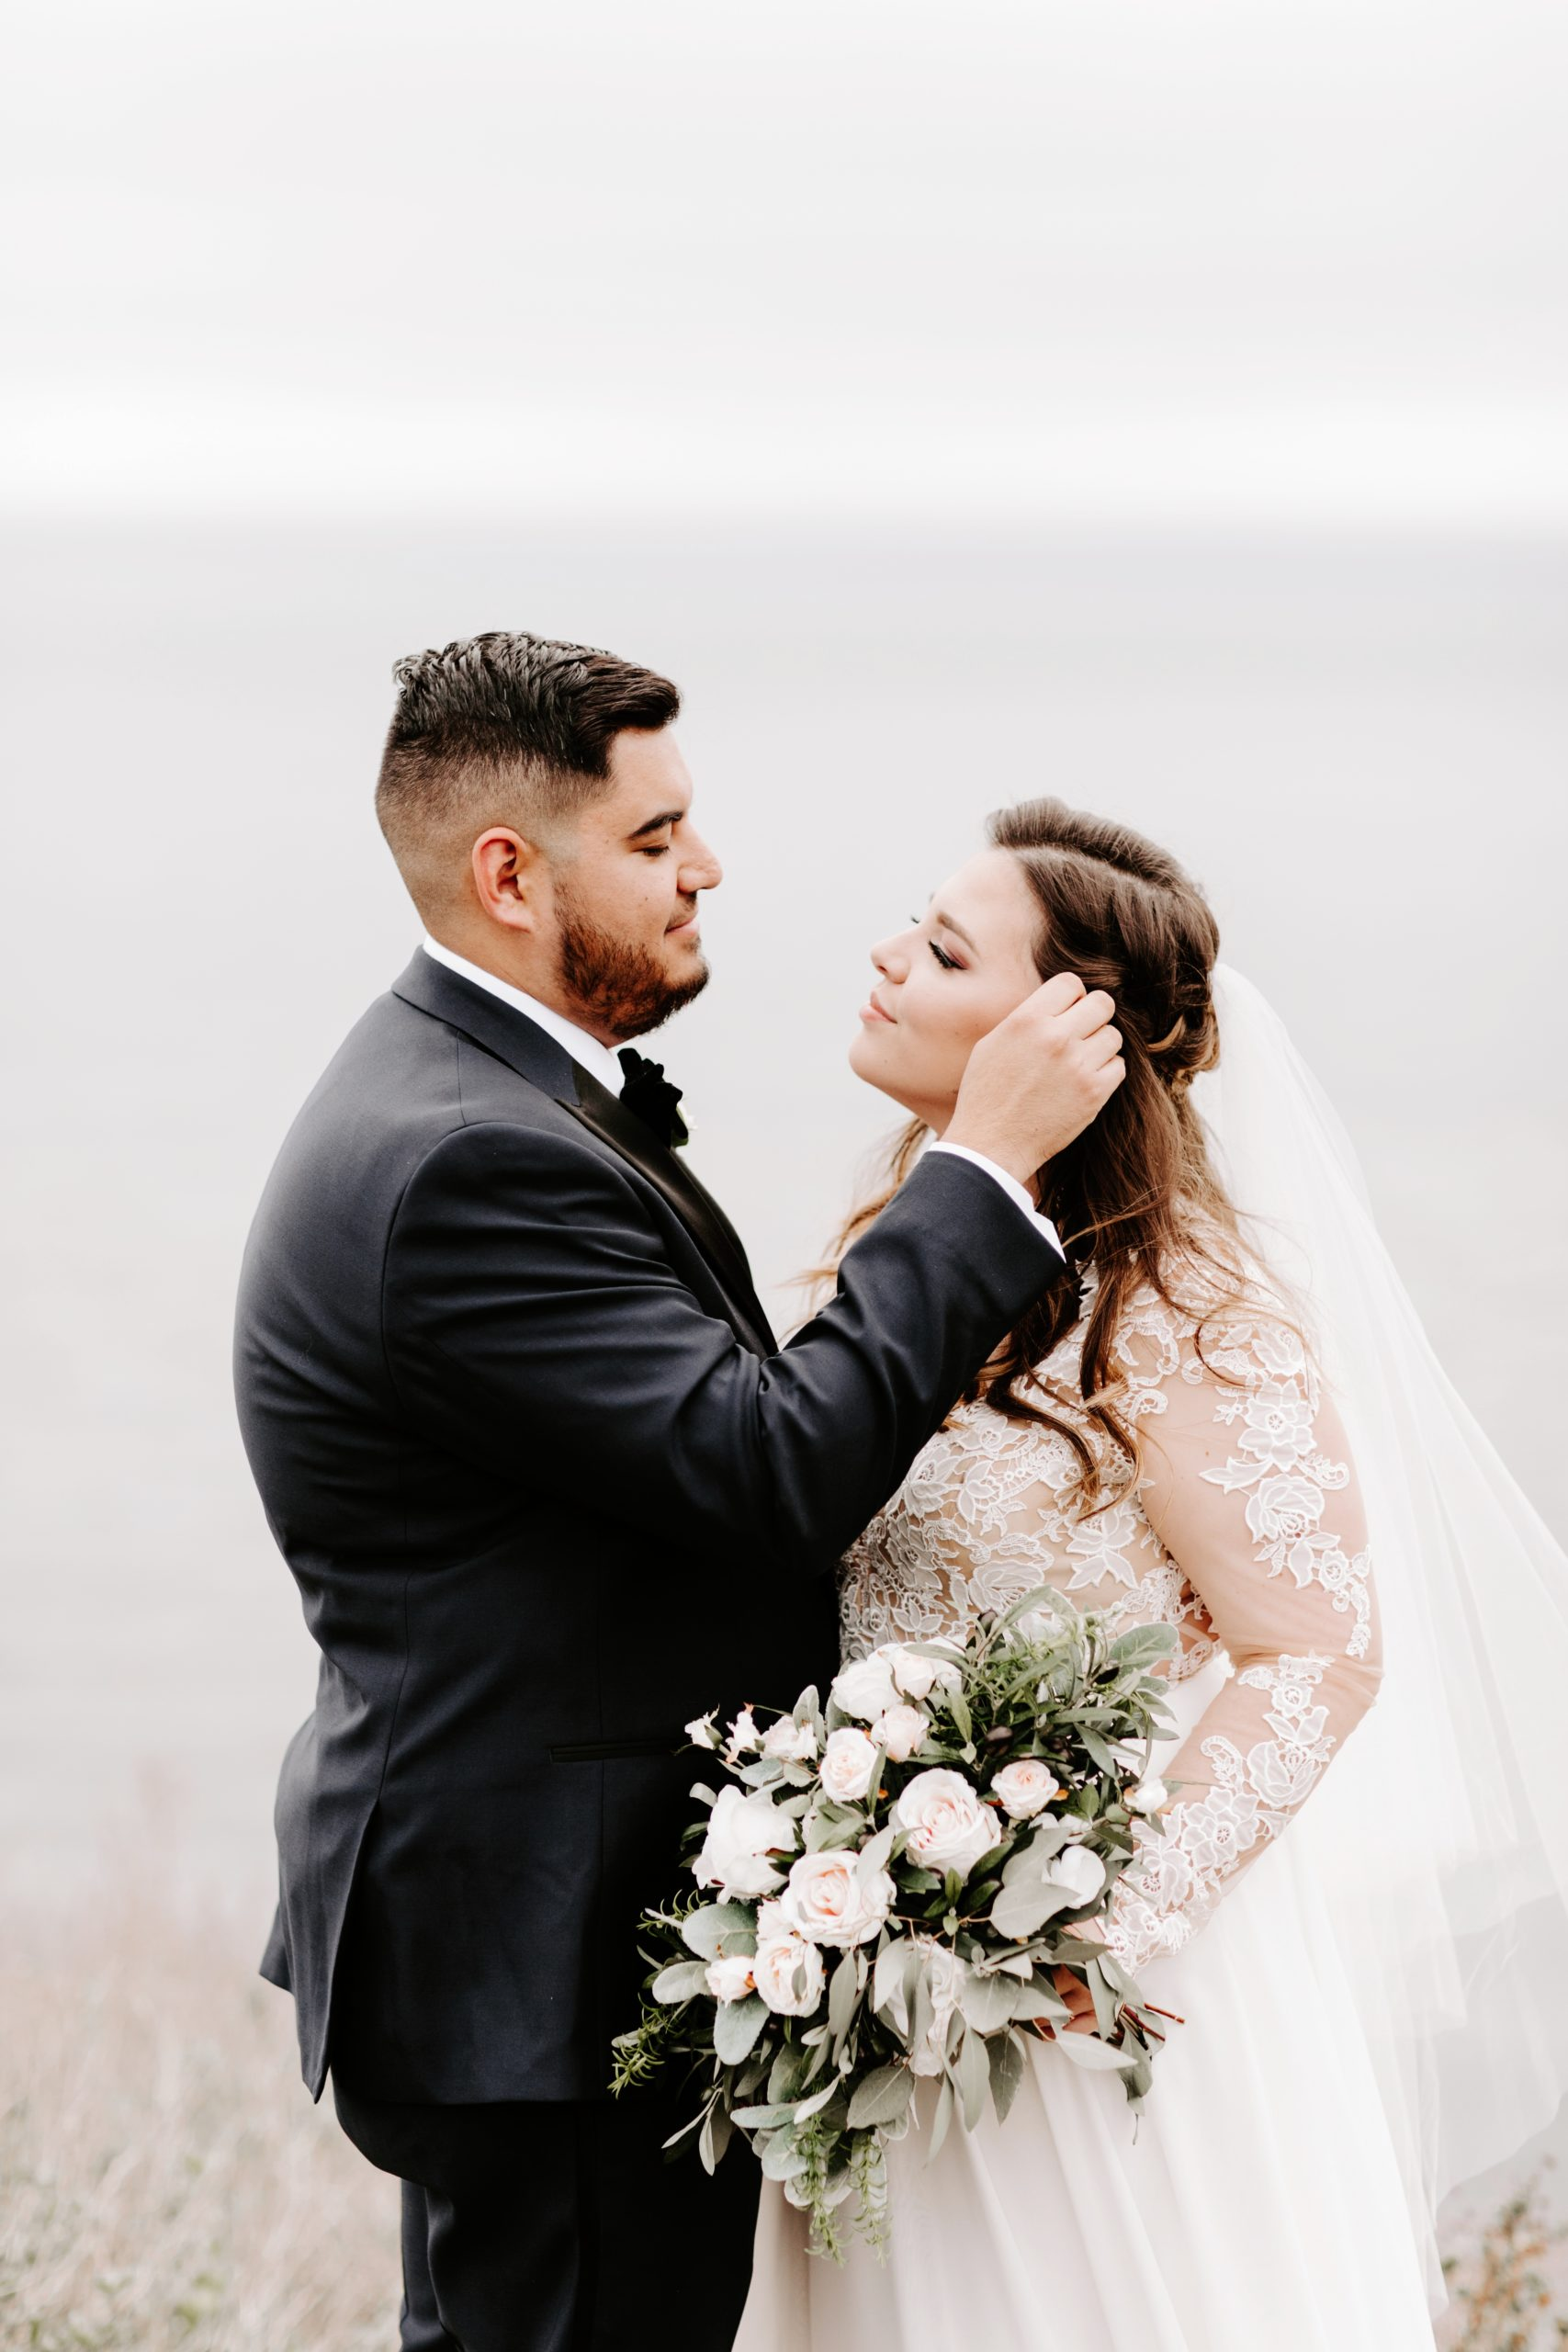 Groom brushes hair from brides face romantically